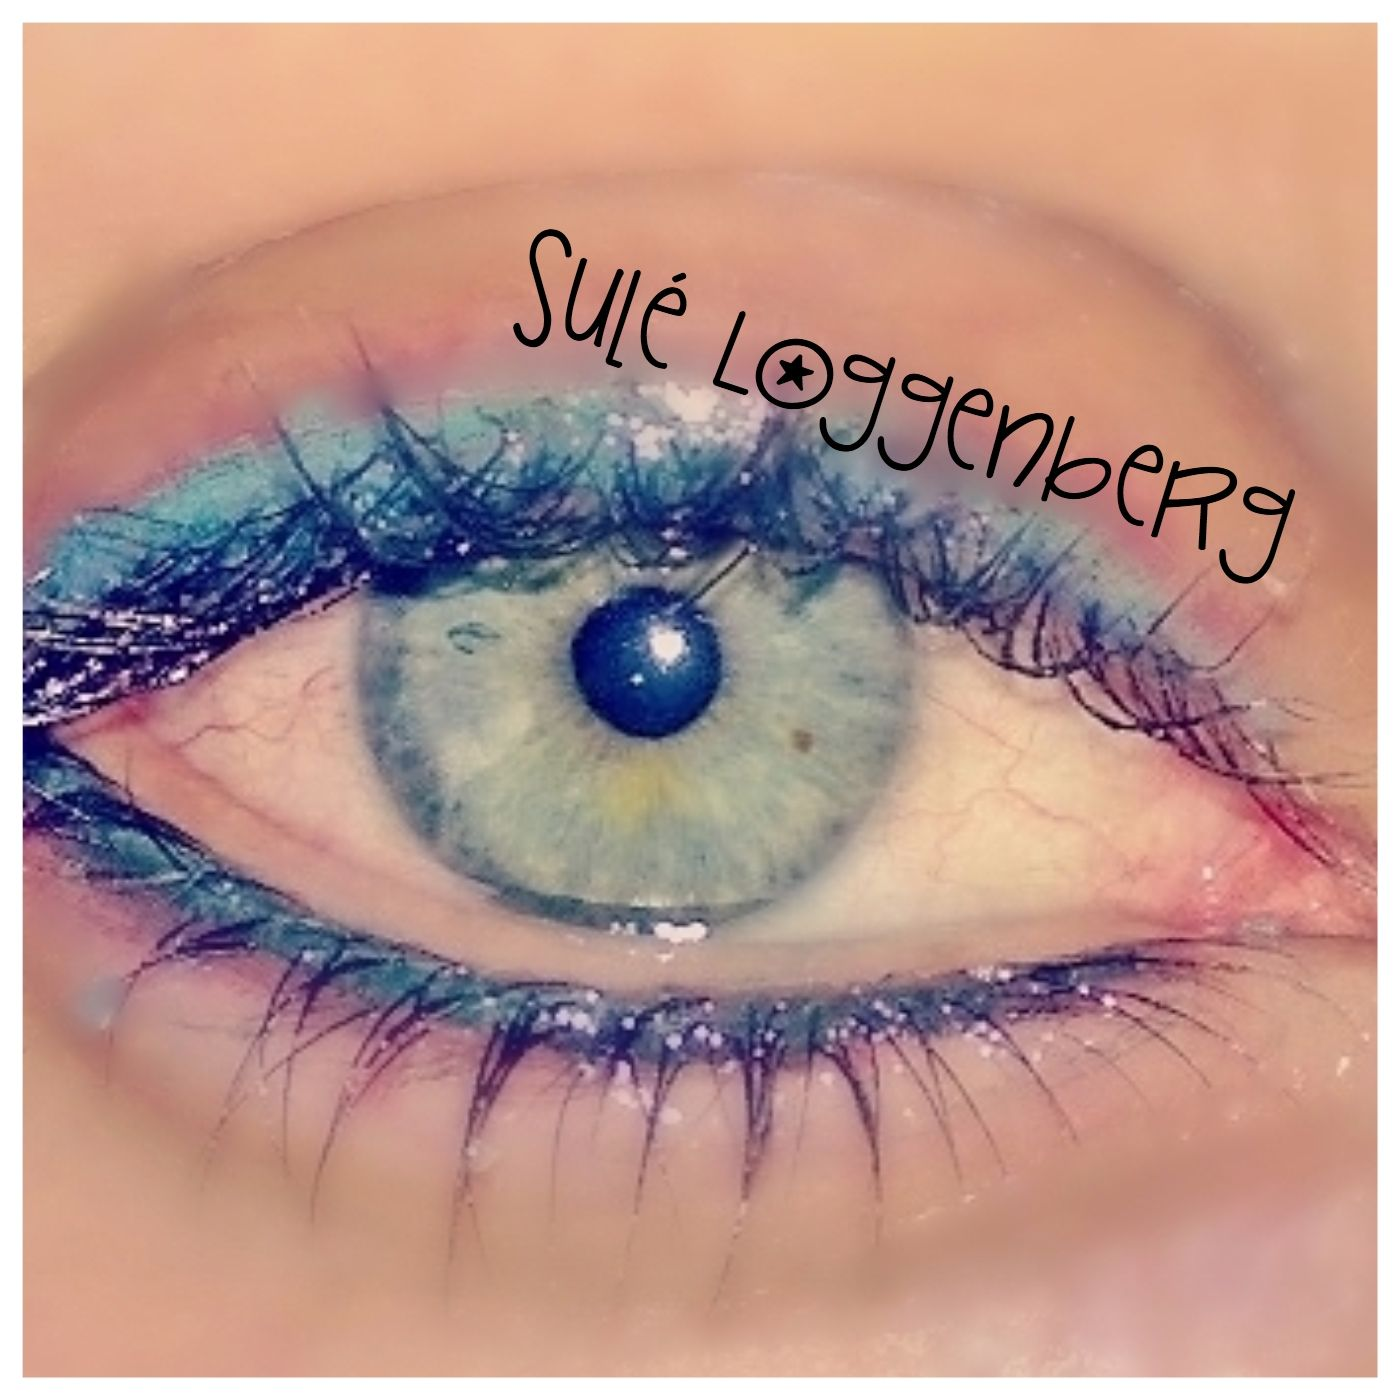 Very Soft Turquoise Eyeliner Top and Bottom done with our